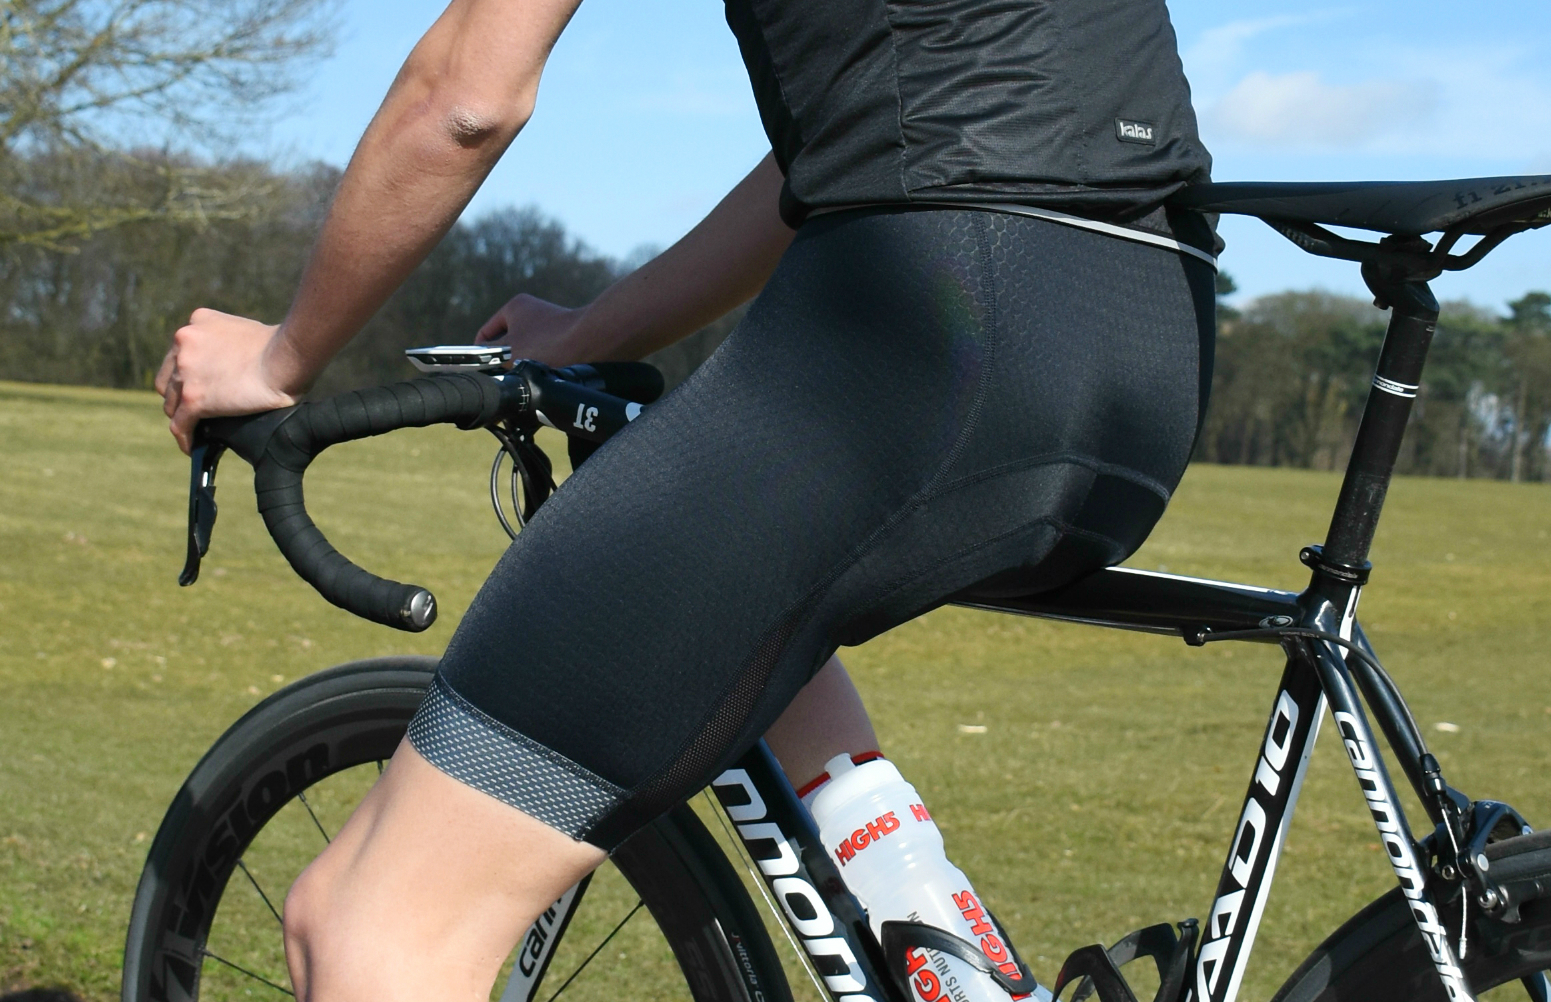 another close-up of a cyclist wearing kalas passion bib-shorts